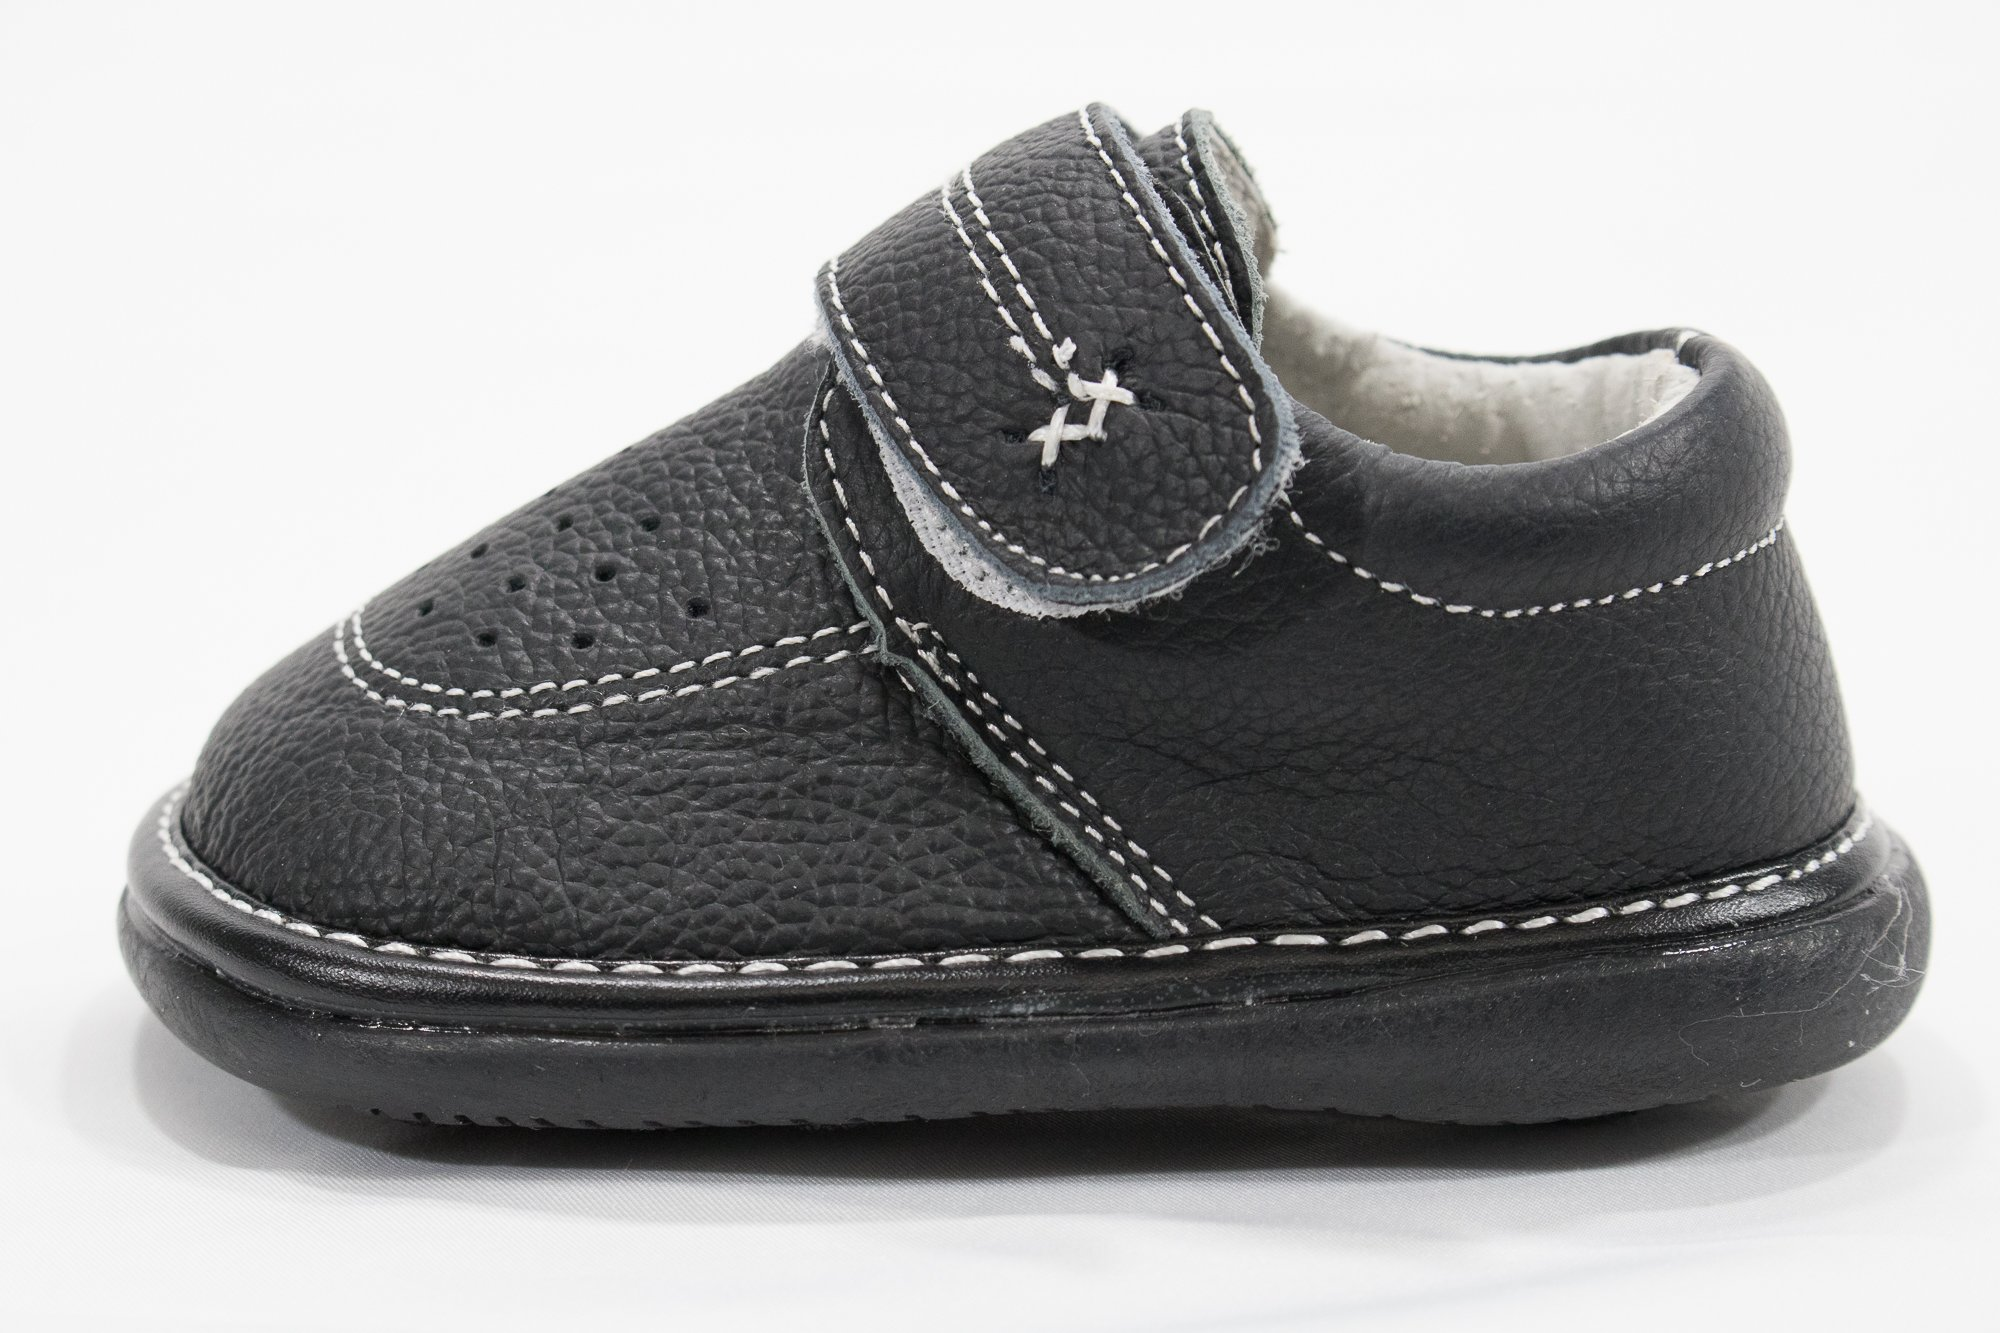 Anderson Baby Care LLC Squeaky Shoes for Toddler Boys (4T, Black Loafer) by Anderson Baby Care LLC (Image #3)